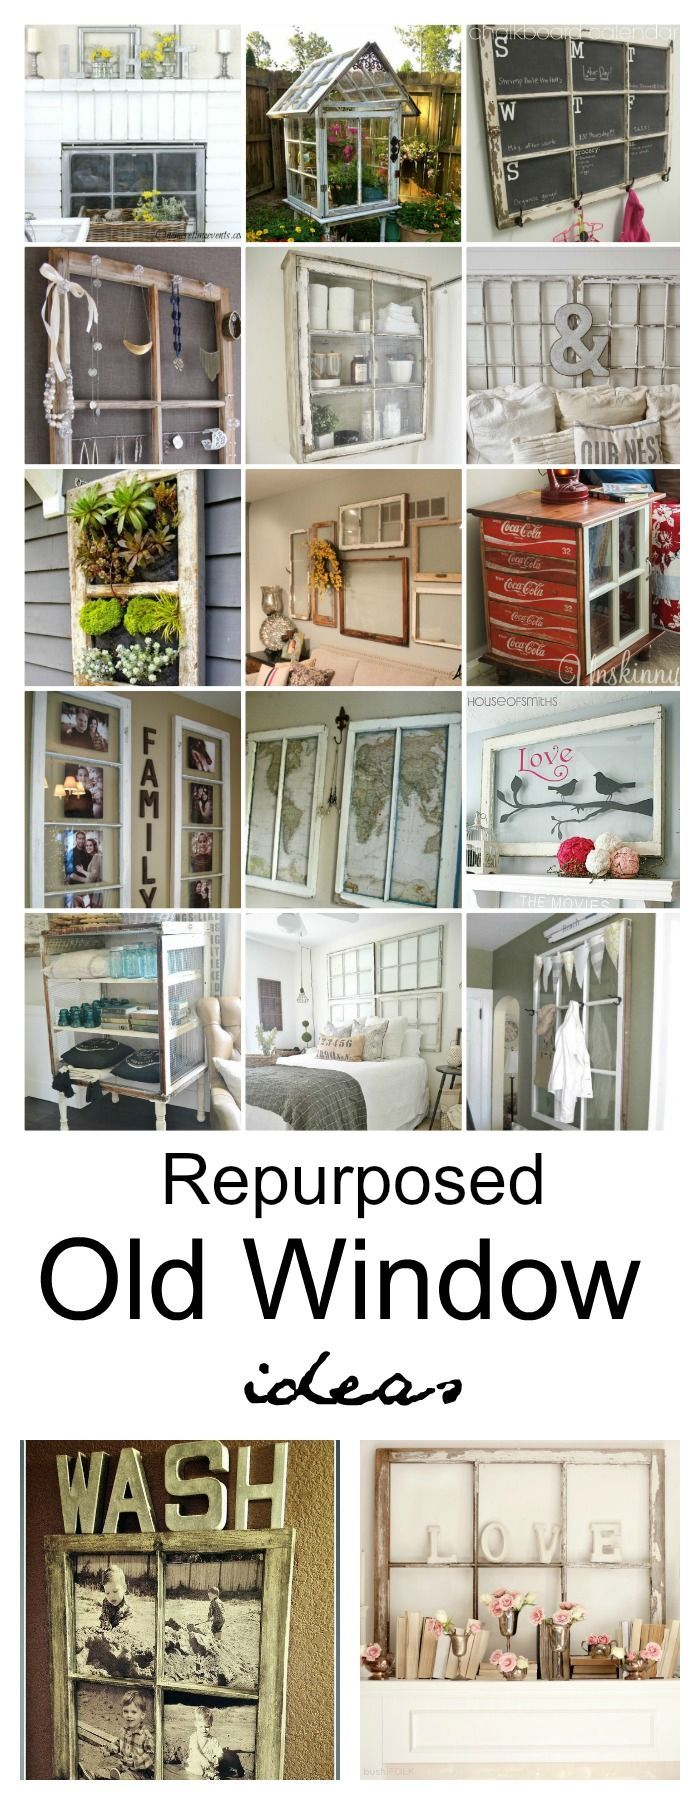 House windows ideas - Repurposed Old Window Ideas